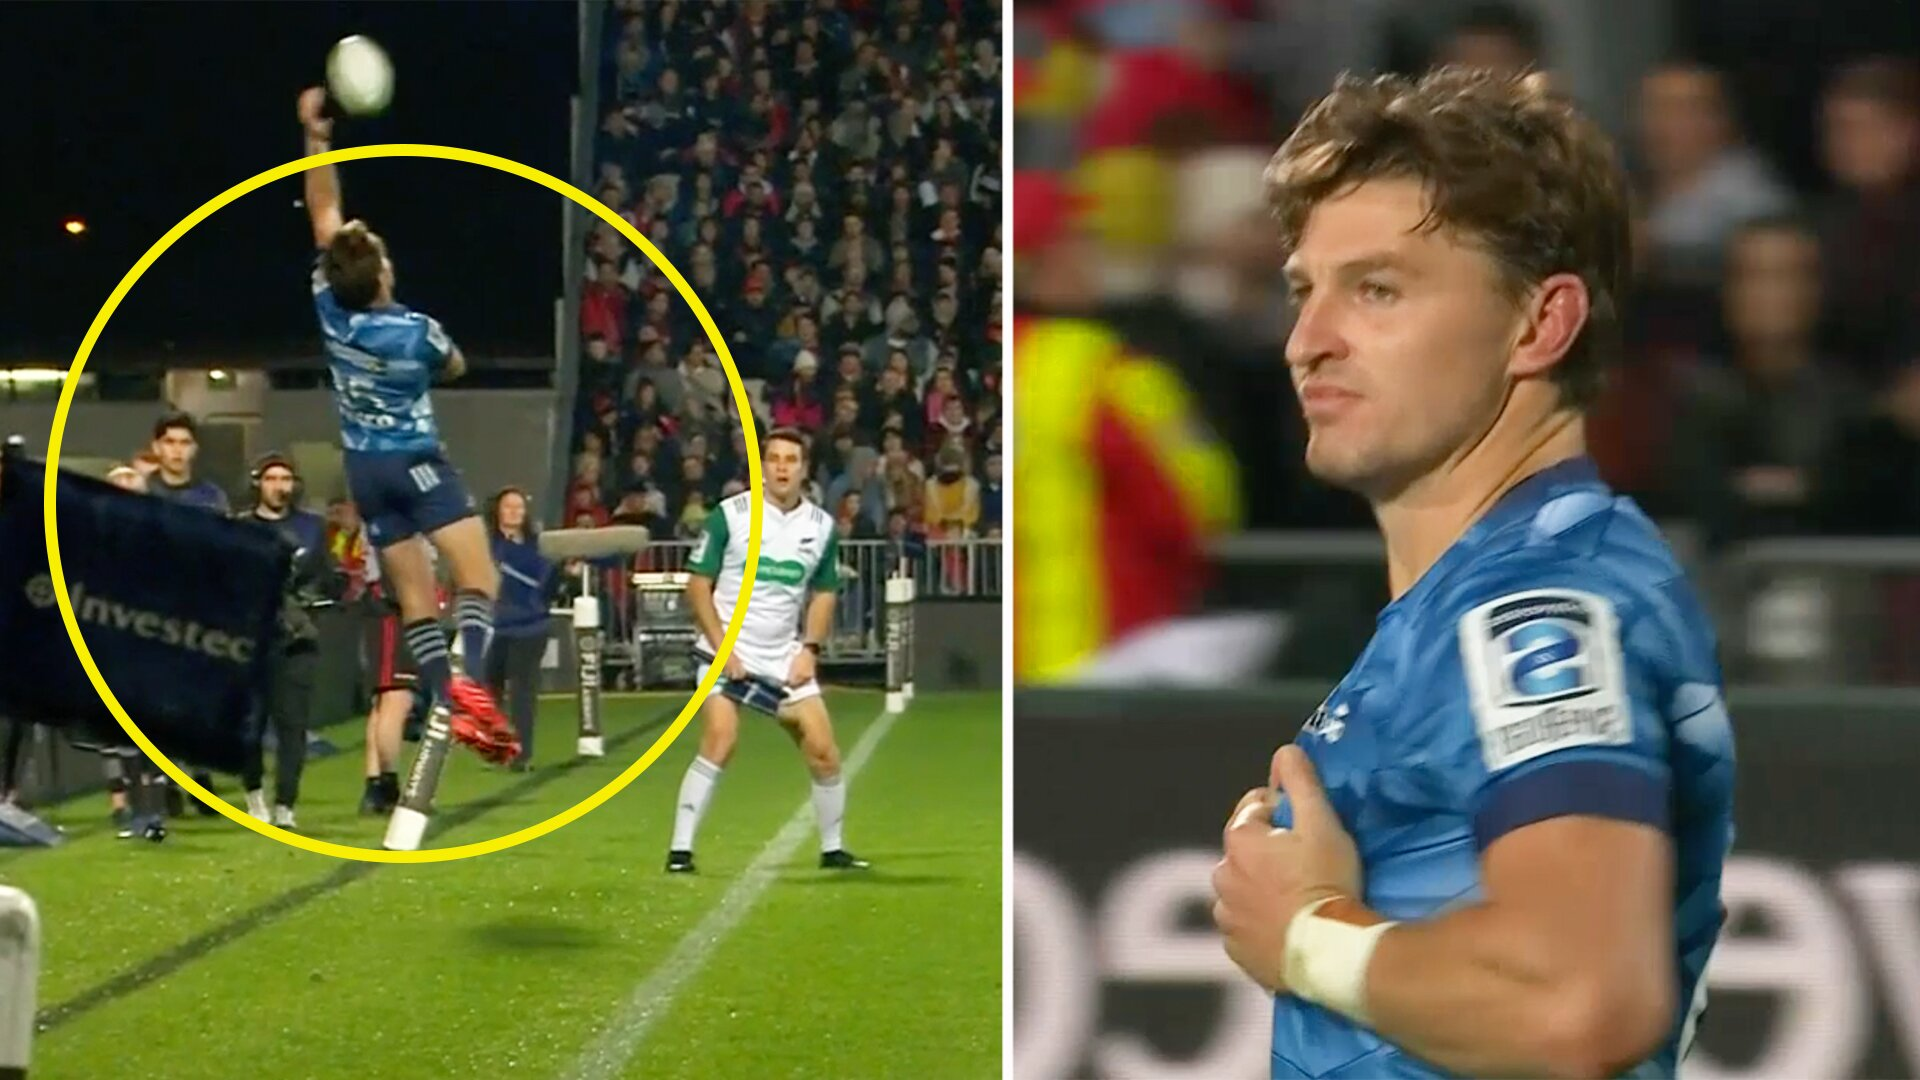 Beauden Barrett defies physics in thrilling Super Rugby showdown